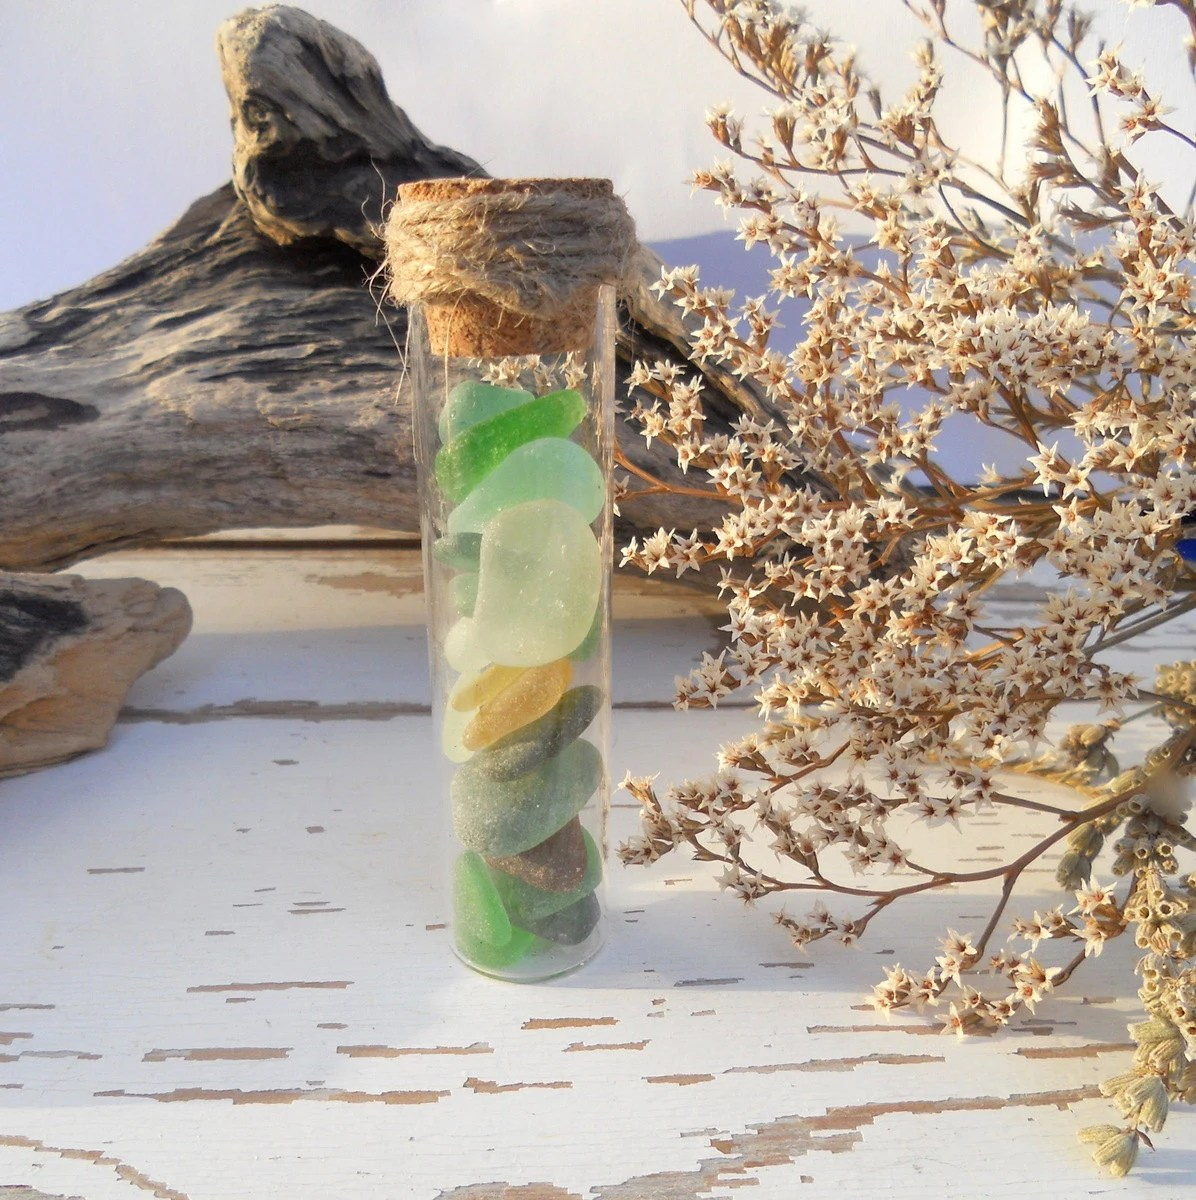 Green White Sea Glass Collection in glass tube Home Decor or Supplies